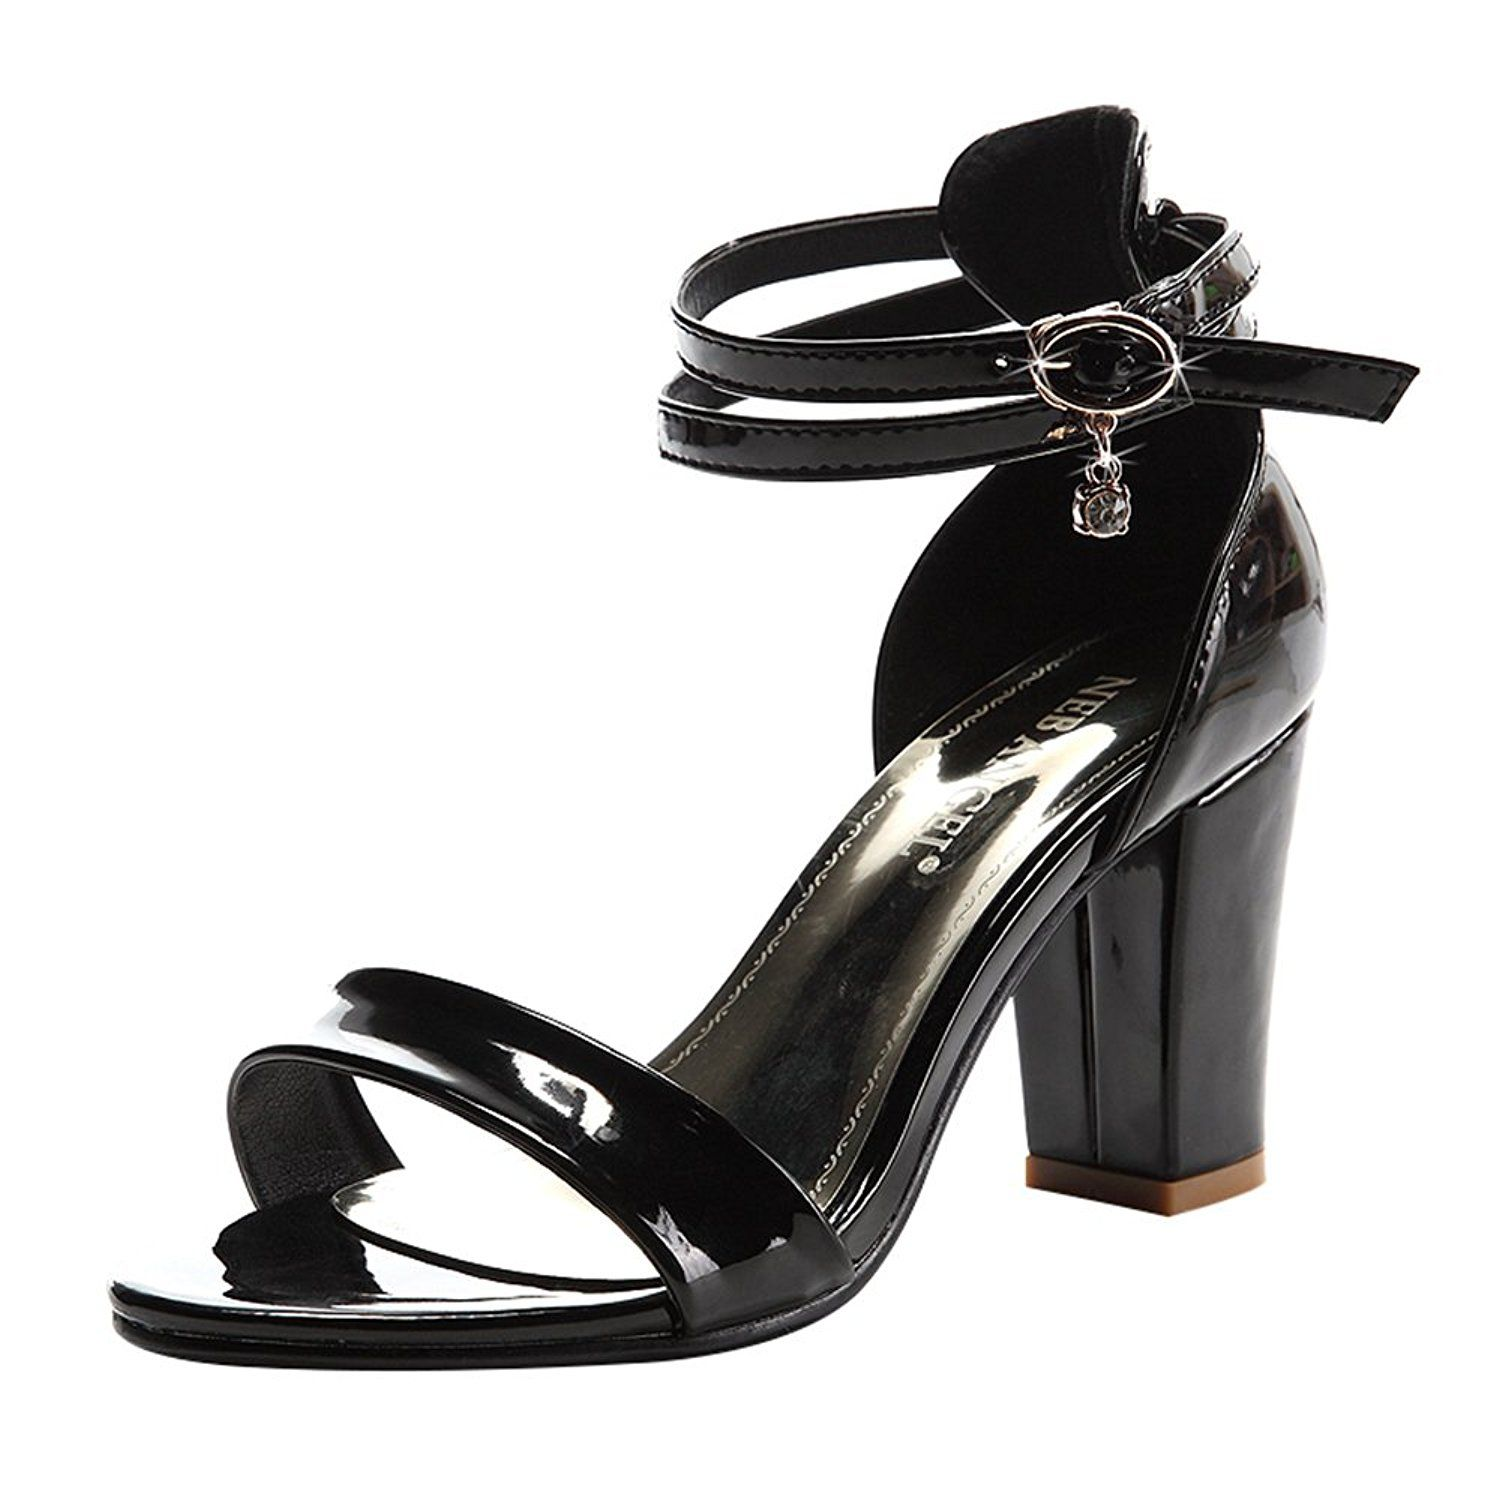 2947b908481 TandGrade Women Fashion Breathable Open Toe Double Belt Comfortable Chunky  Mid Heel Sandals     Read more at the image link.